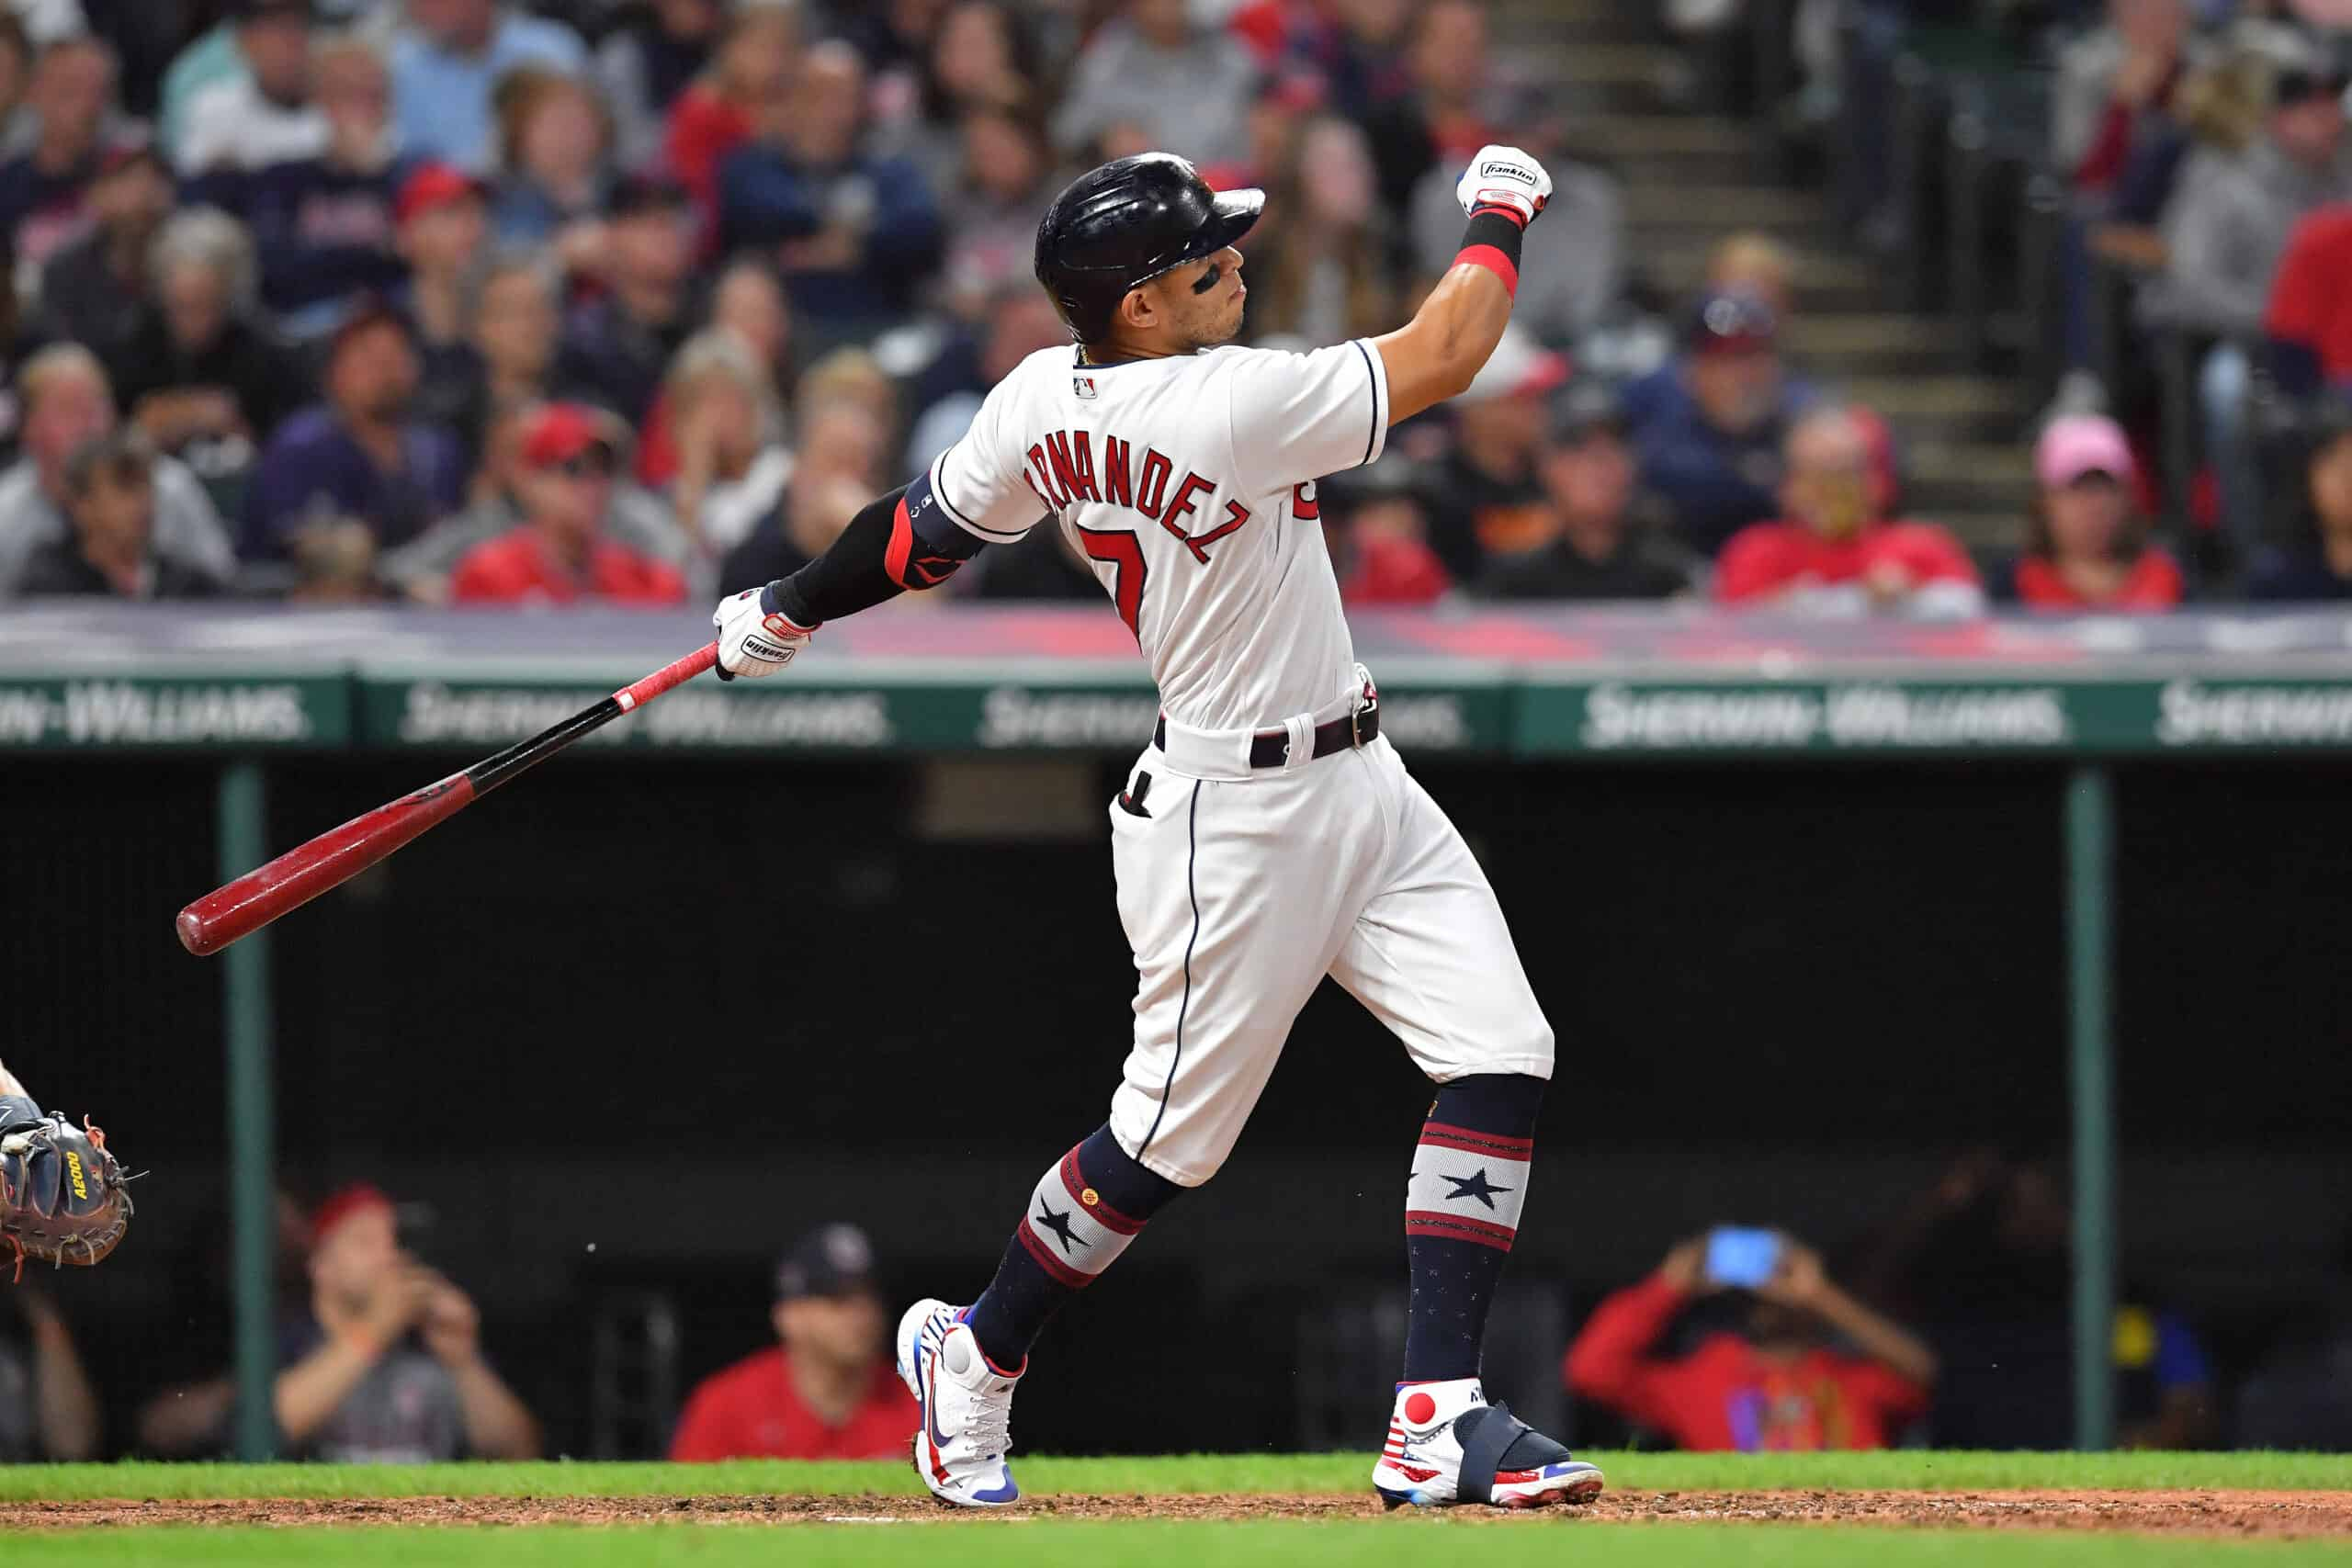 Cesar Hernandez #7 of the Cleveland Indians watches a three-run home run clear the left field fence during the sixth inning against the Houston Astros at Progressive Field on July 02, 2021 in Cleveland, Ohio.